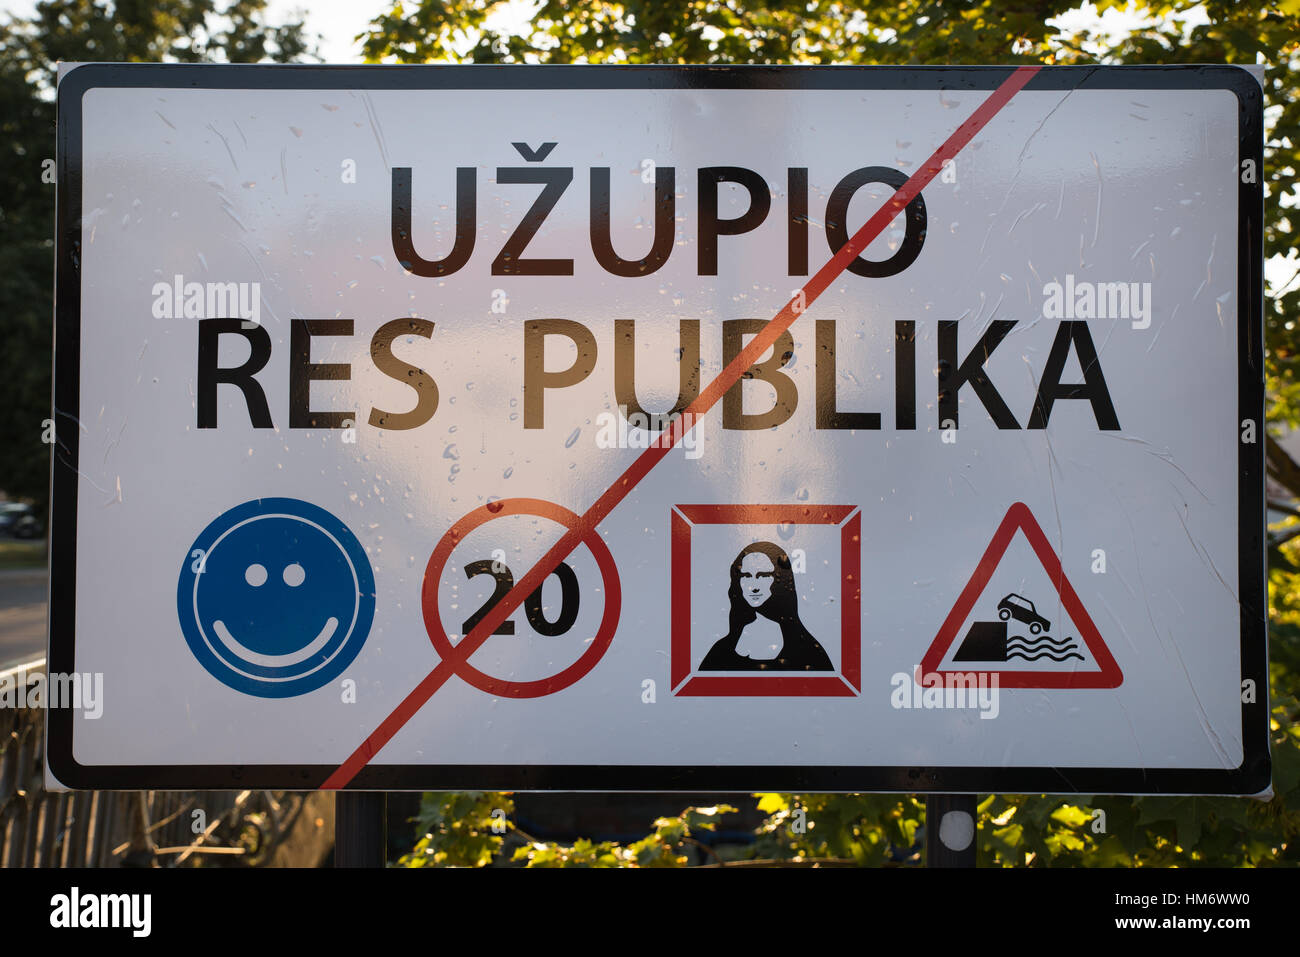 Sign at the border of the Republic of Užupis, Vilnius, Lithuania Stock Photo